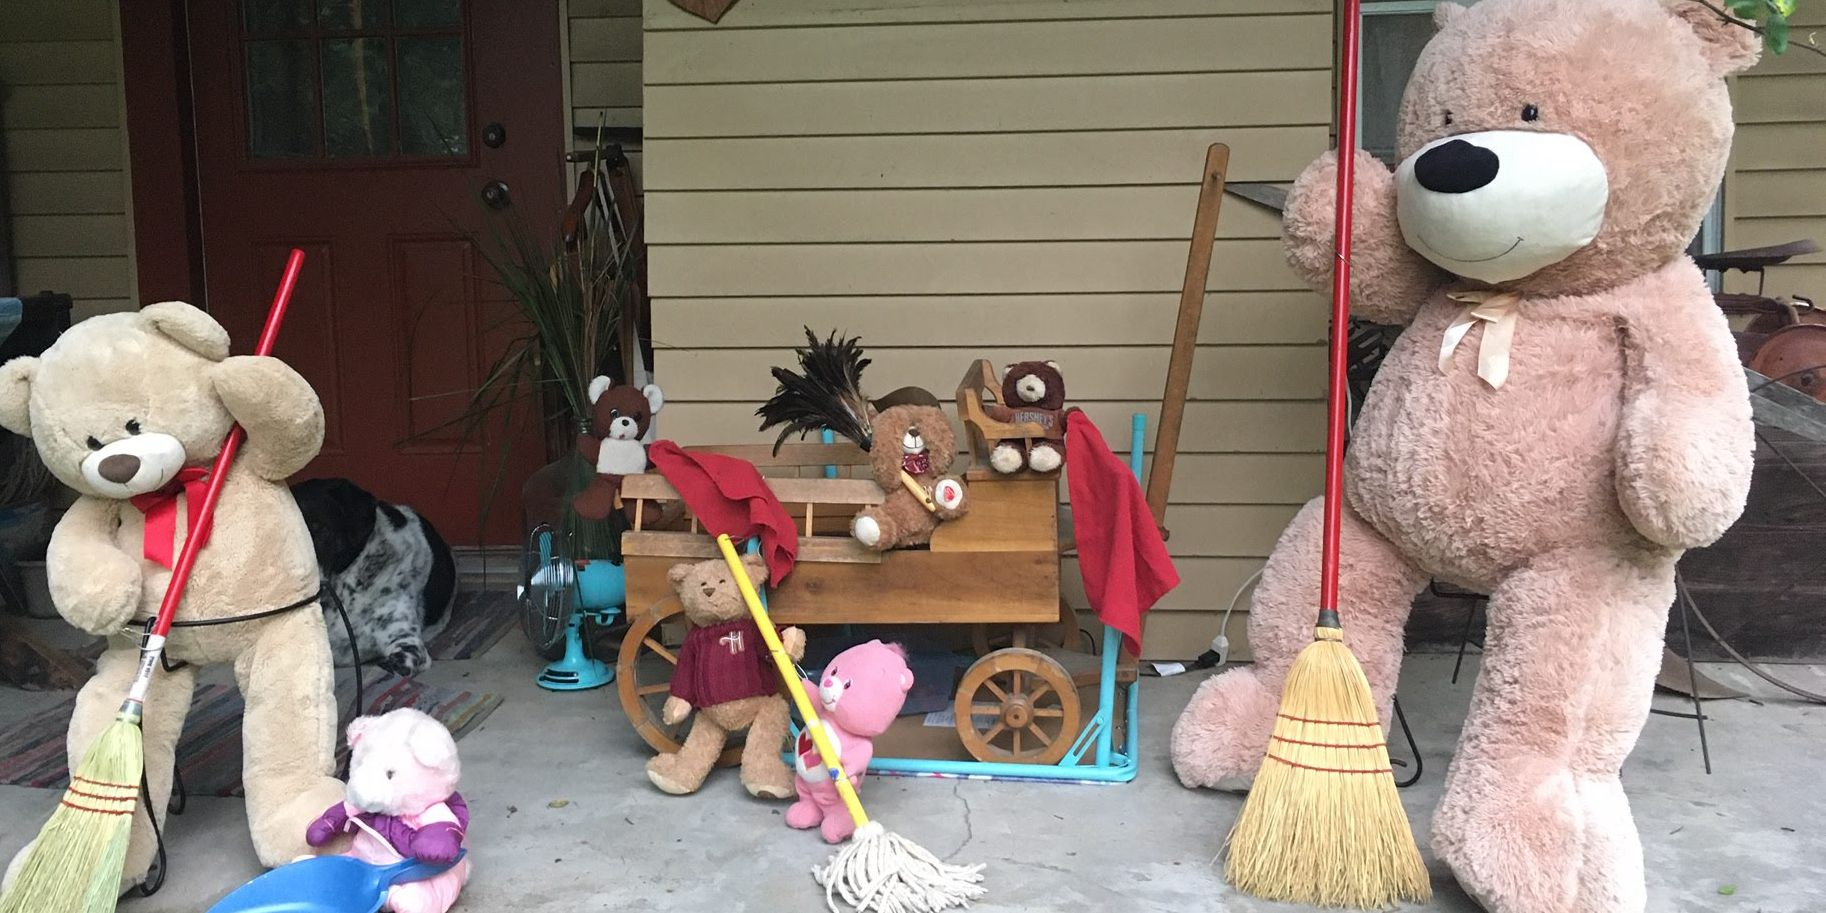 Louisiana woman thinks outside the stuffing to create daily scene for kids